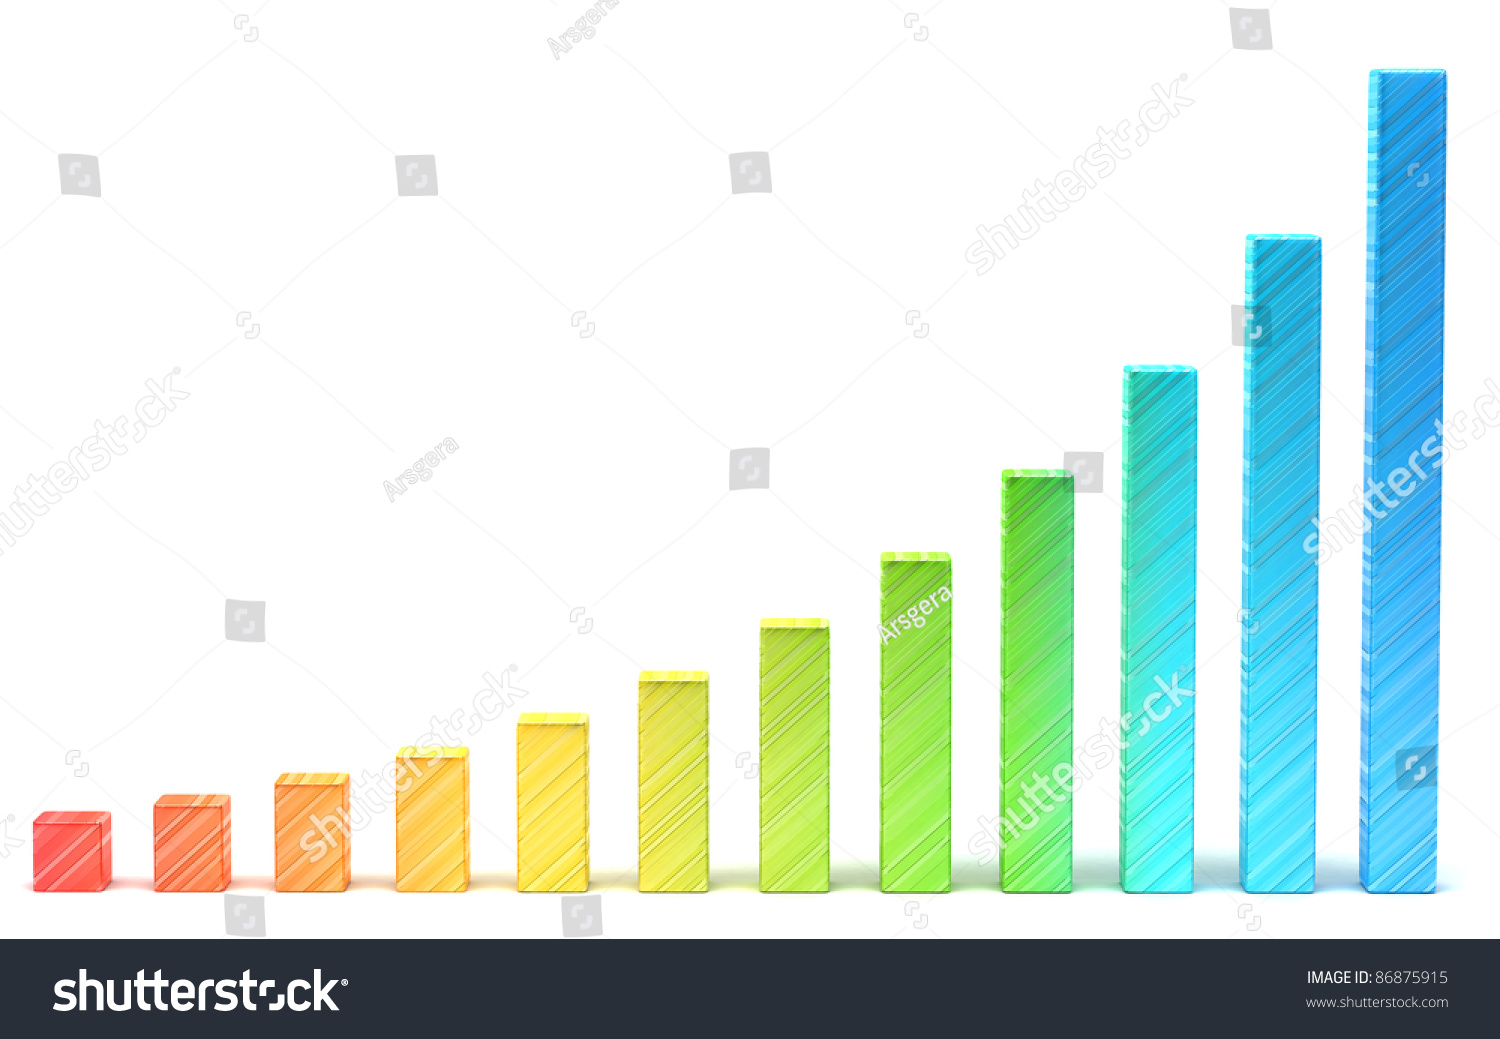 statistical analysis graphs and diagrams jacuzzi hot tub wiring diagram statistics gradient or chart over